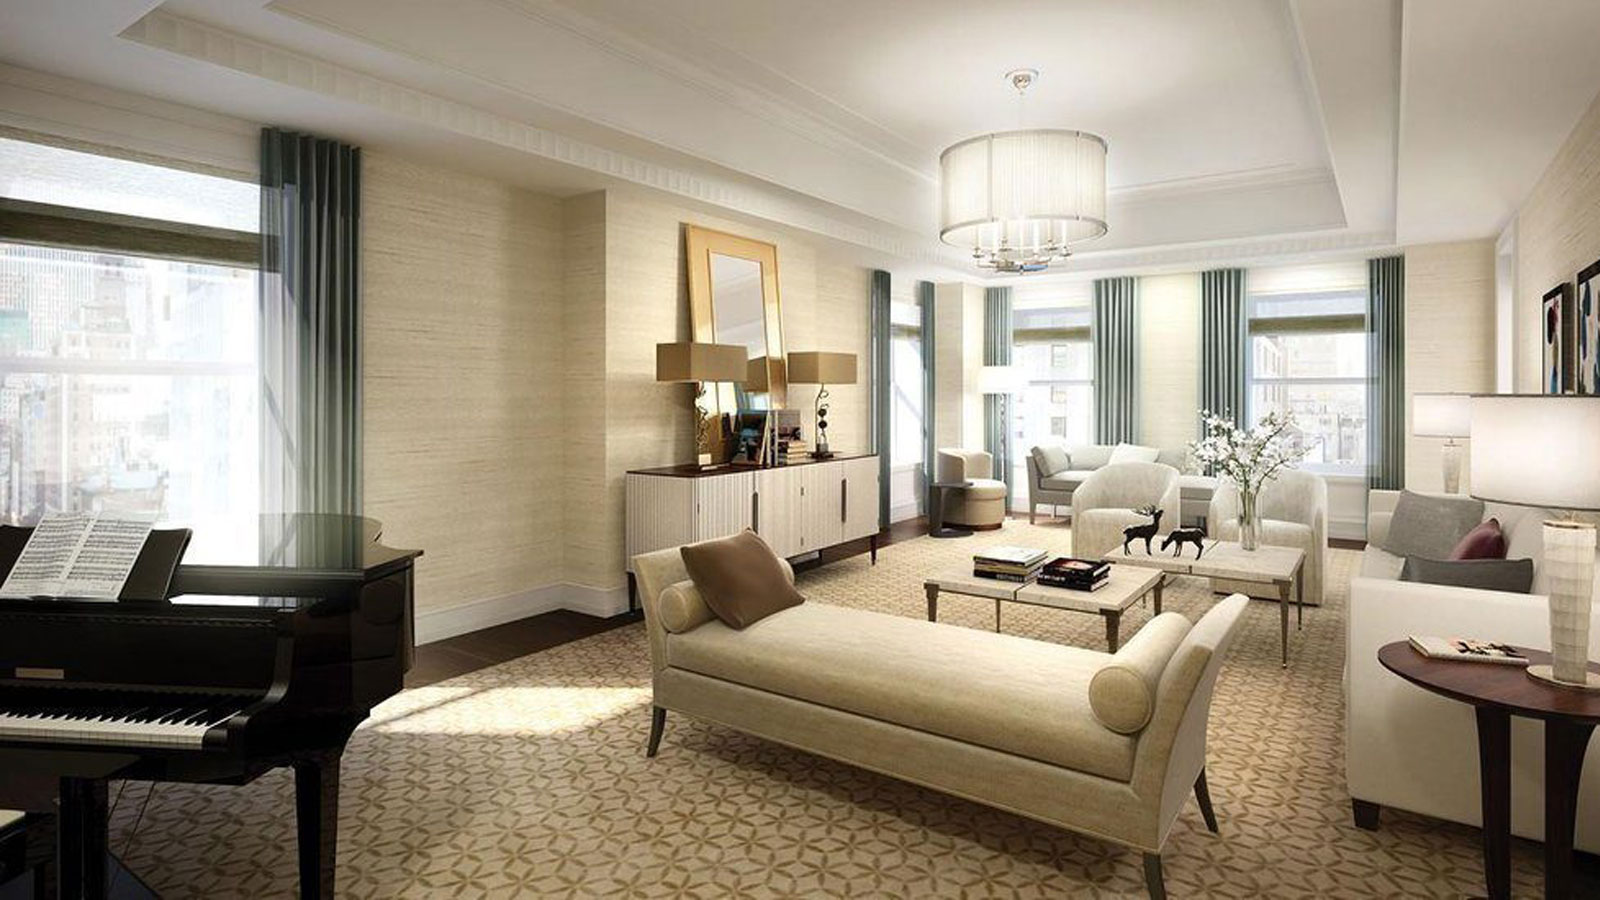 Whitney Condos, Luxury Condo, Park/Fifth Ave. to 79th, New York City